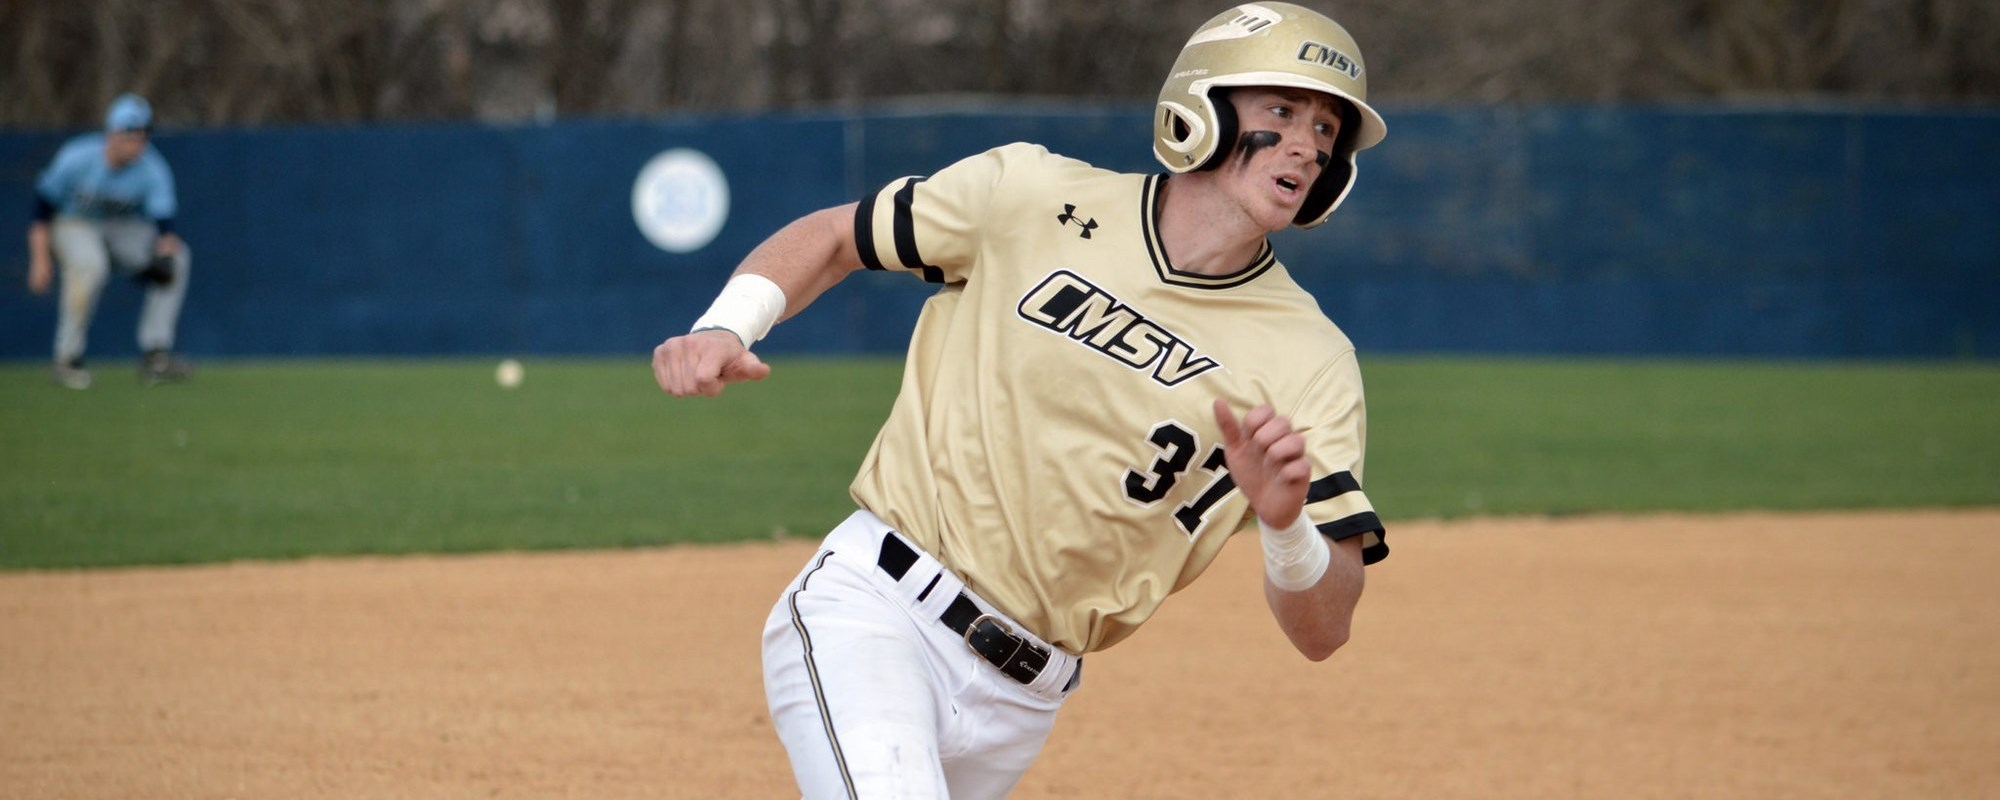 Mount St Vincent Baseball Scores Results Schedule